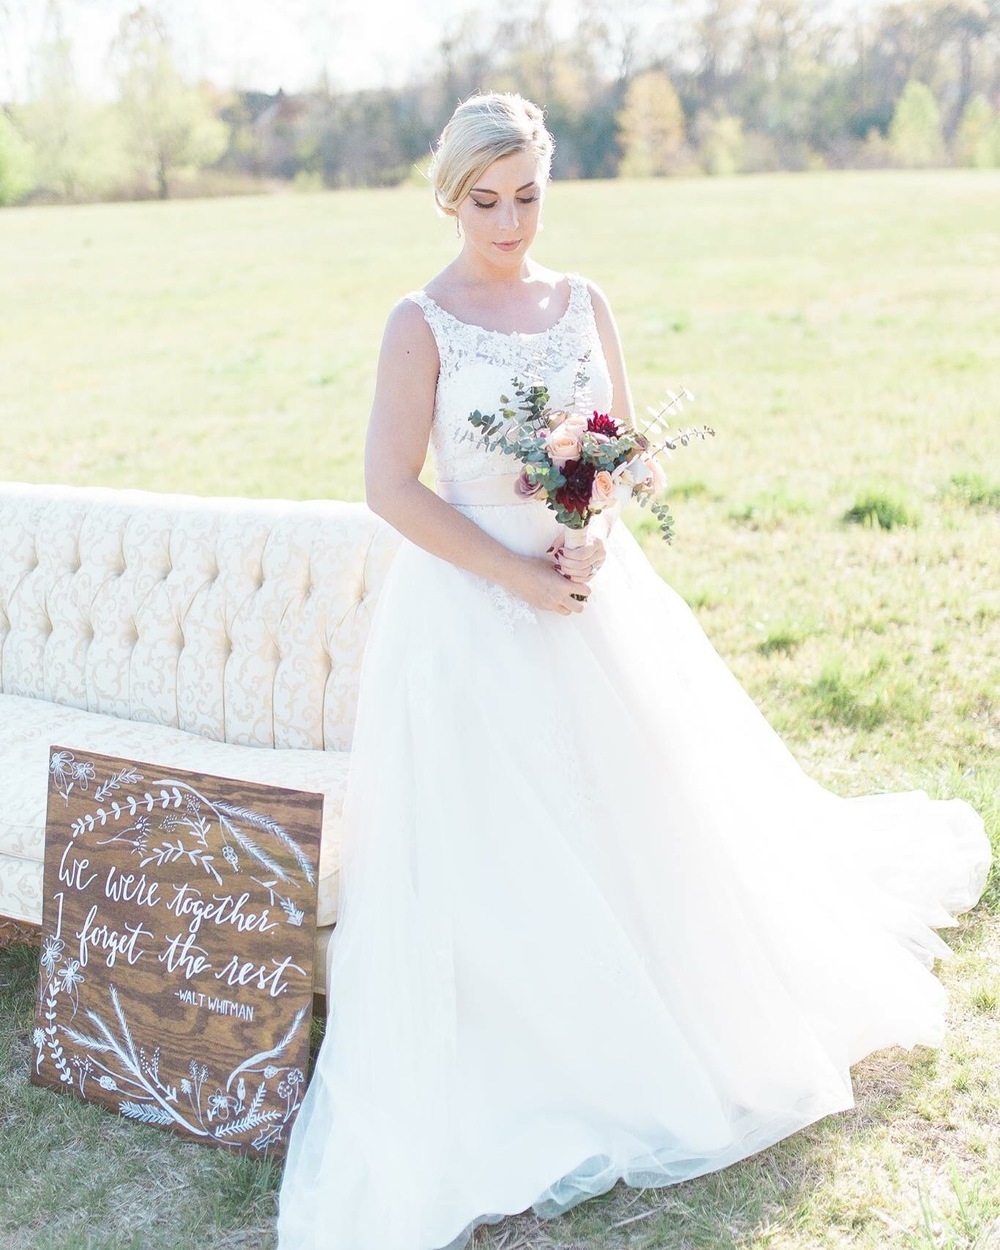 Vendors: 1783 Photography, Kerry + Felicia, Les Fleurs, Love and Lace Bridal Boutique, and Shotgunning for Love Letters (me).